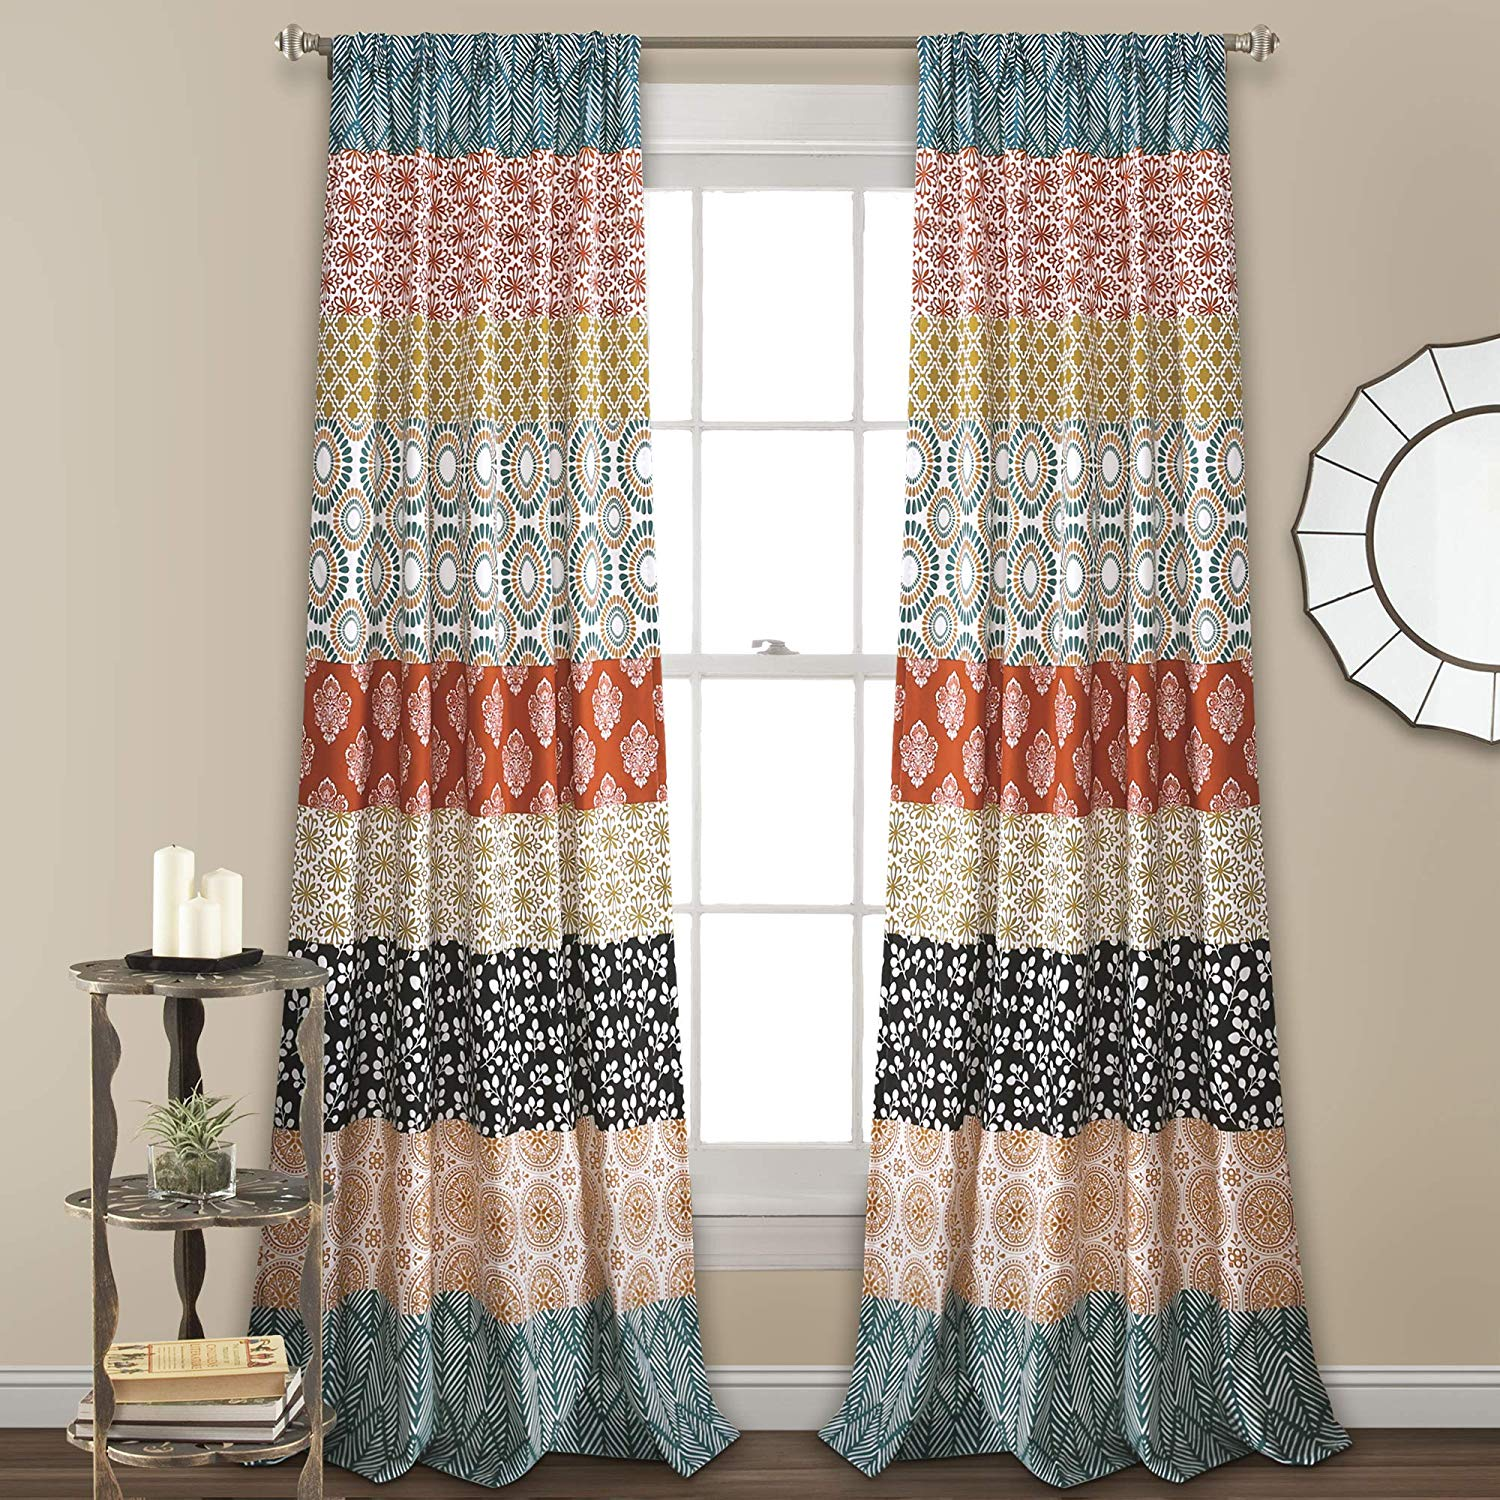 Lush Decor Turquoise and Orange Bohemian Stripe Window Curtain Colorful Bold Design Panel Pair 84 by 52